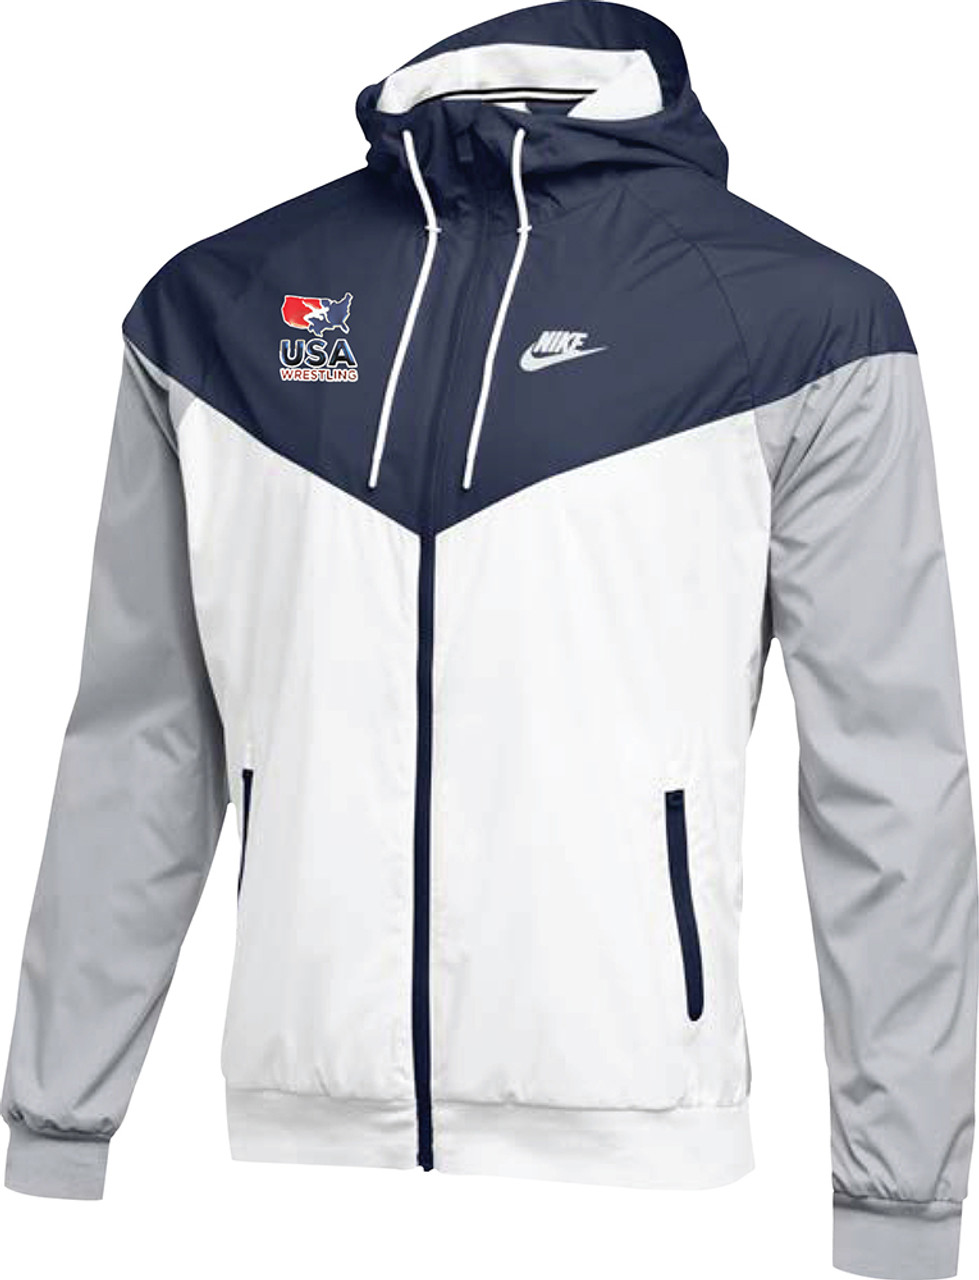 finest fabrics biggest selection durable in use Nike Men's USAWR NSW Windrunner Jacket - Navy/Red/White/Navy